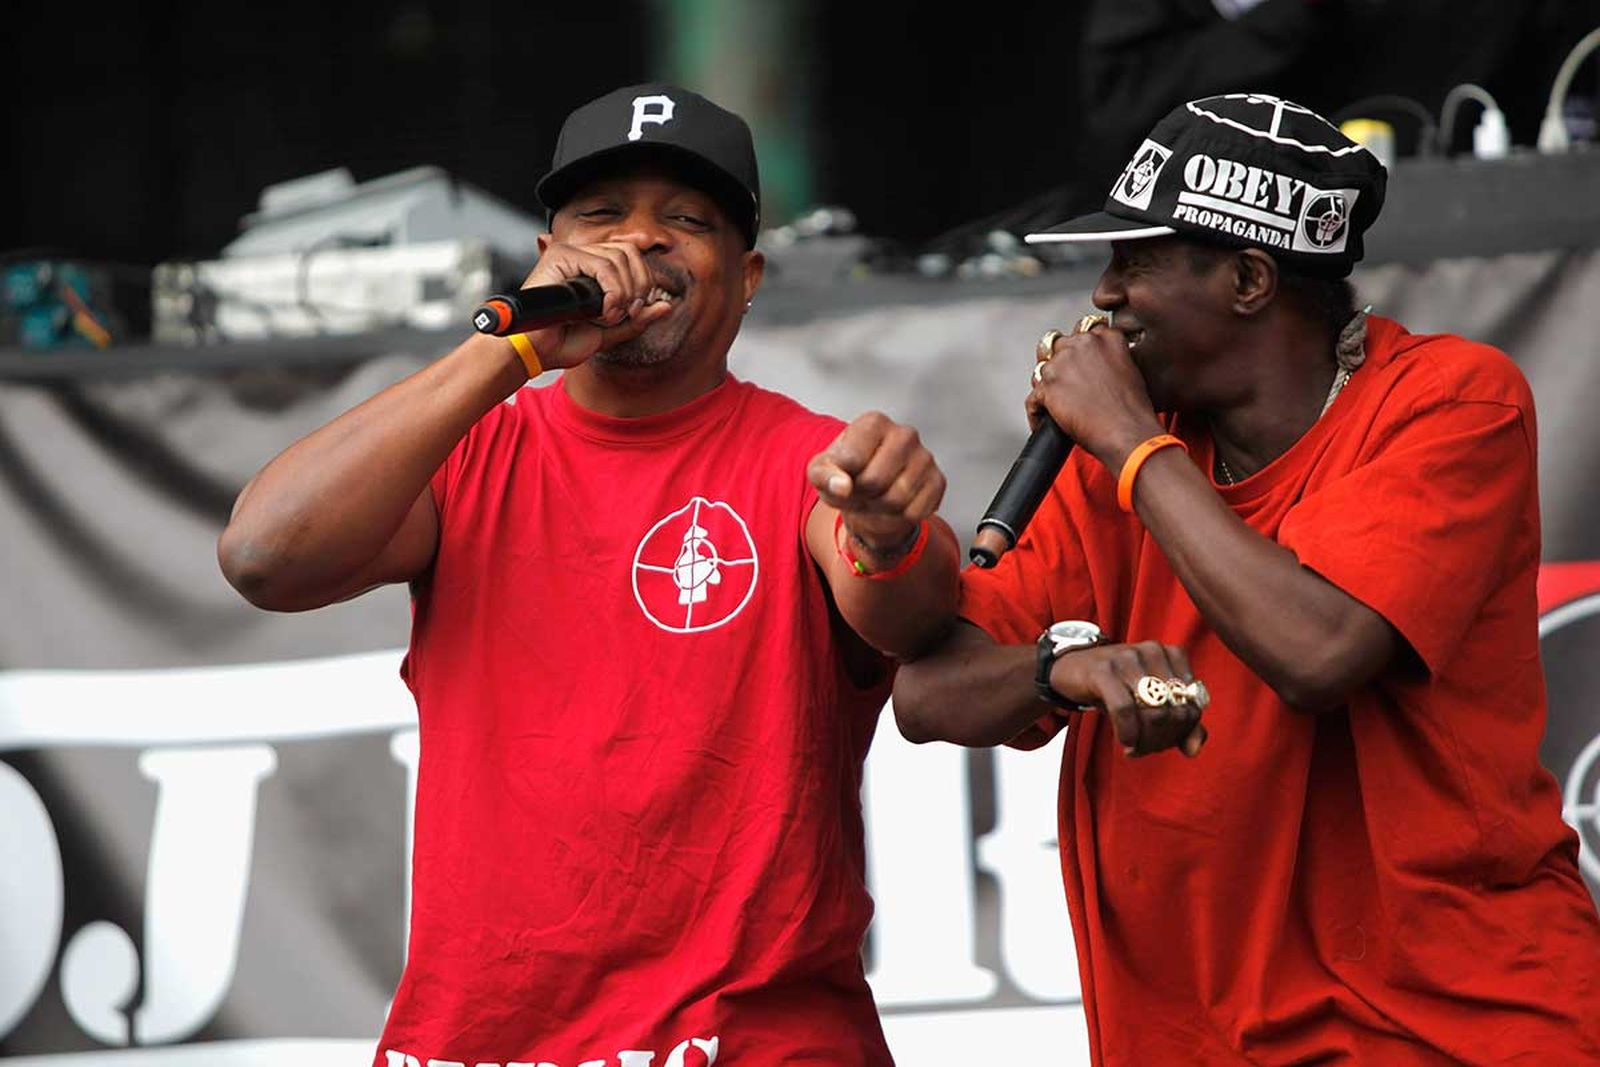 Public Enemy performing on stage